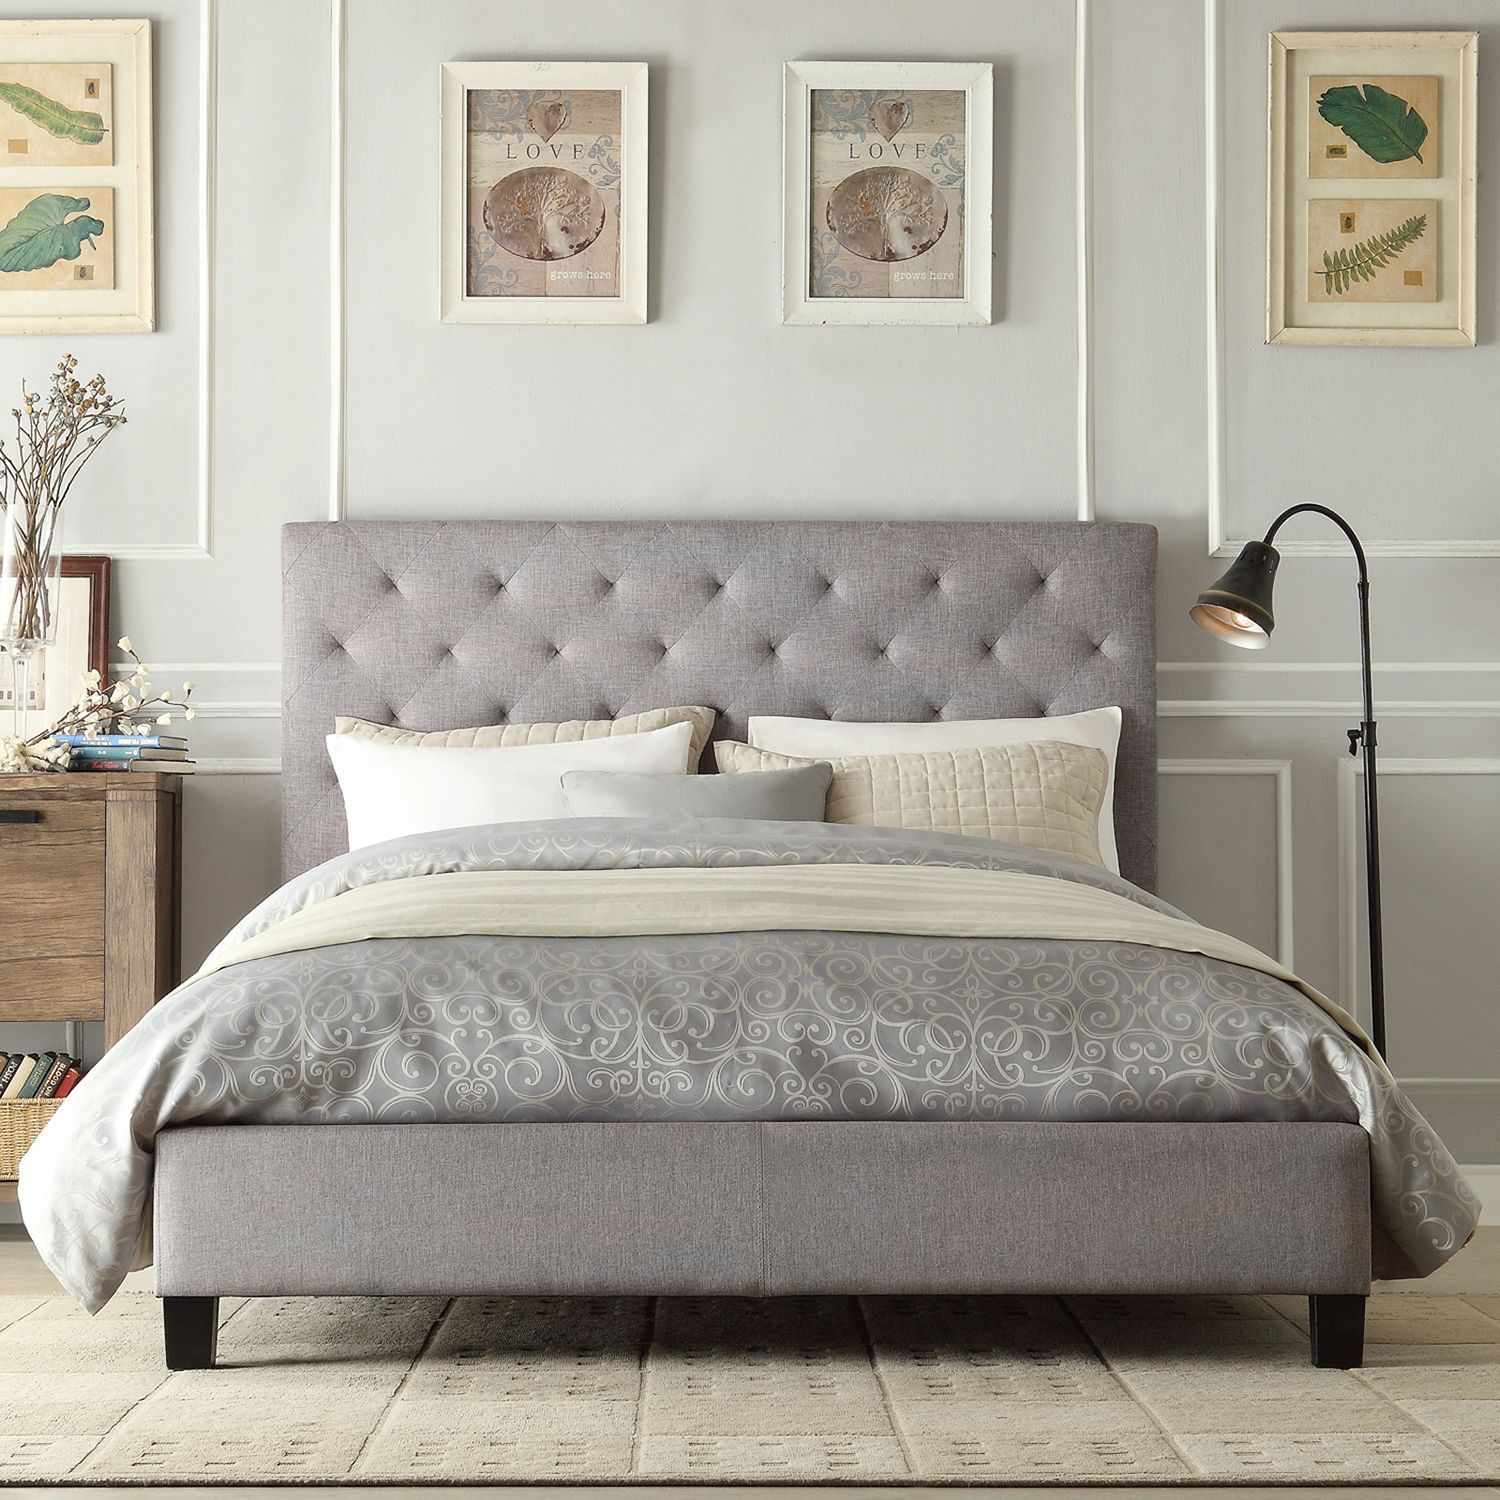 Beautify The Bedroom With This Stylish Tufted Platform Bed